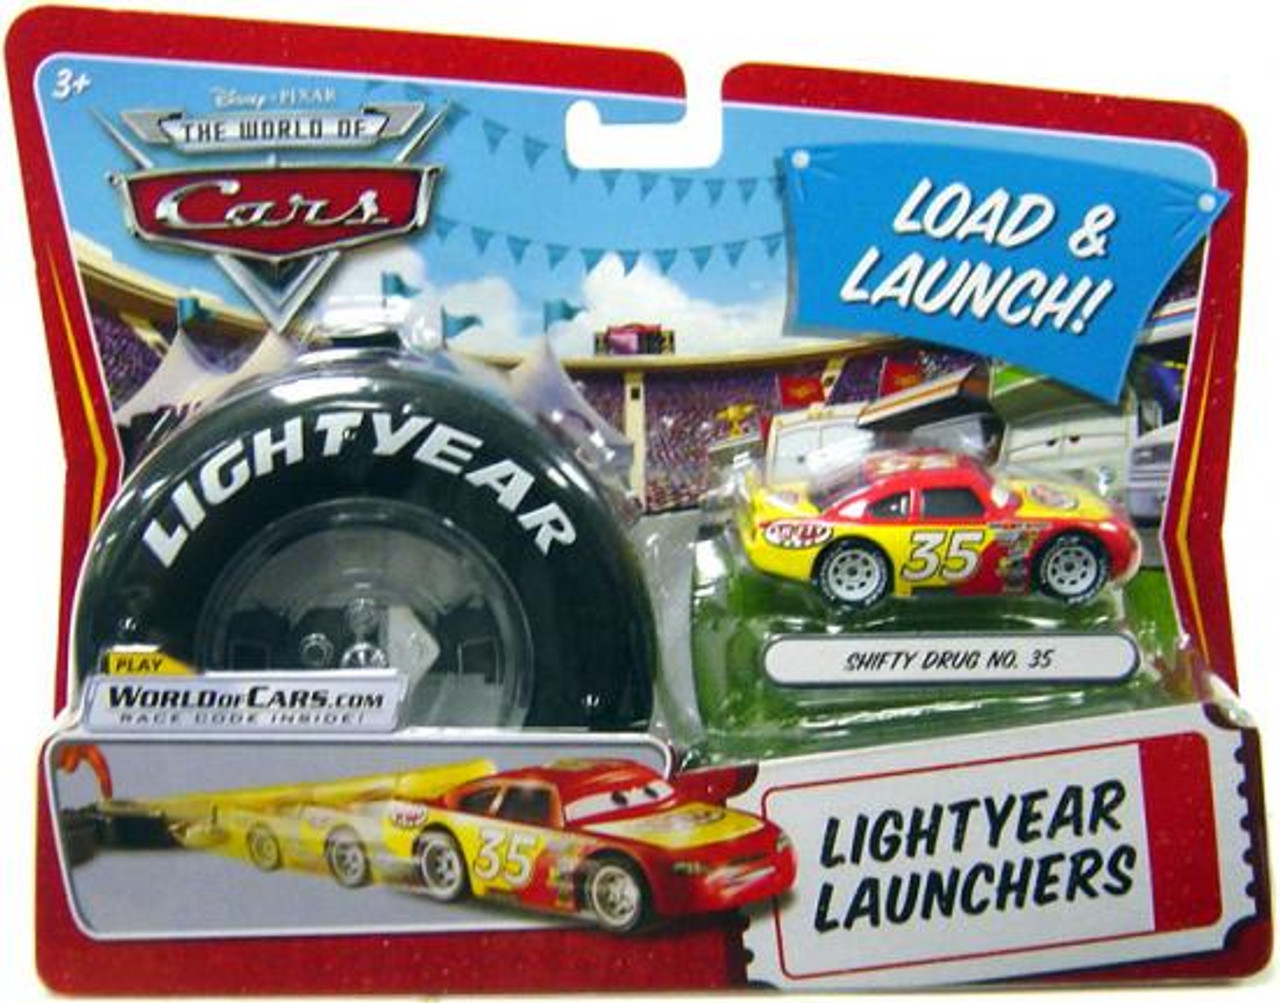 Disney Cars The World of Cars Lightyear Launchers Shifty Drug No. 35 Diecast Car [With Launcher]